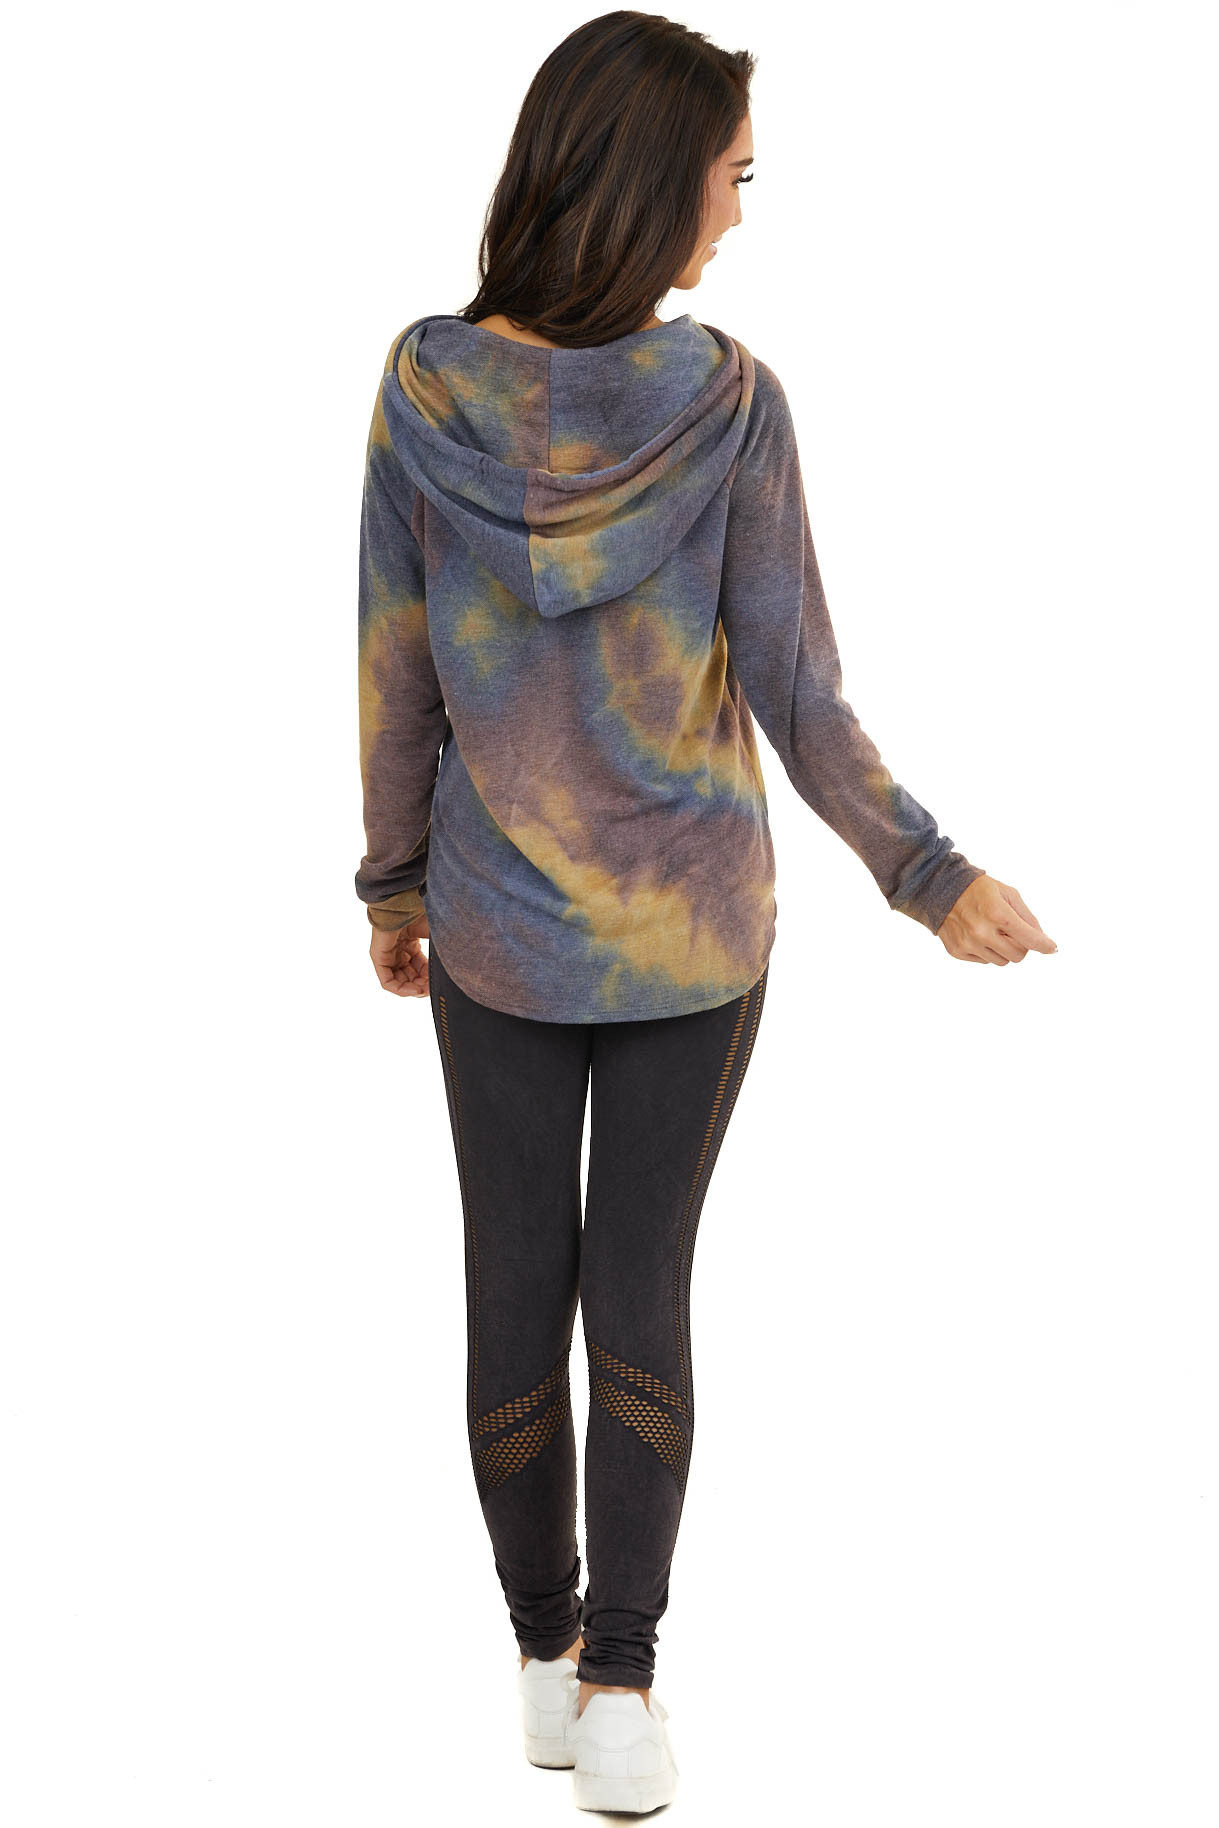 Dusty Blue and Lilac Tie Dye Hoodie with Gold Sequin Pocket